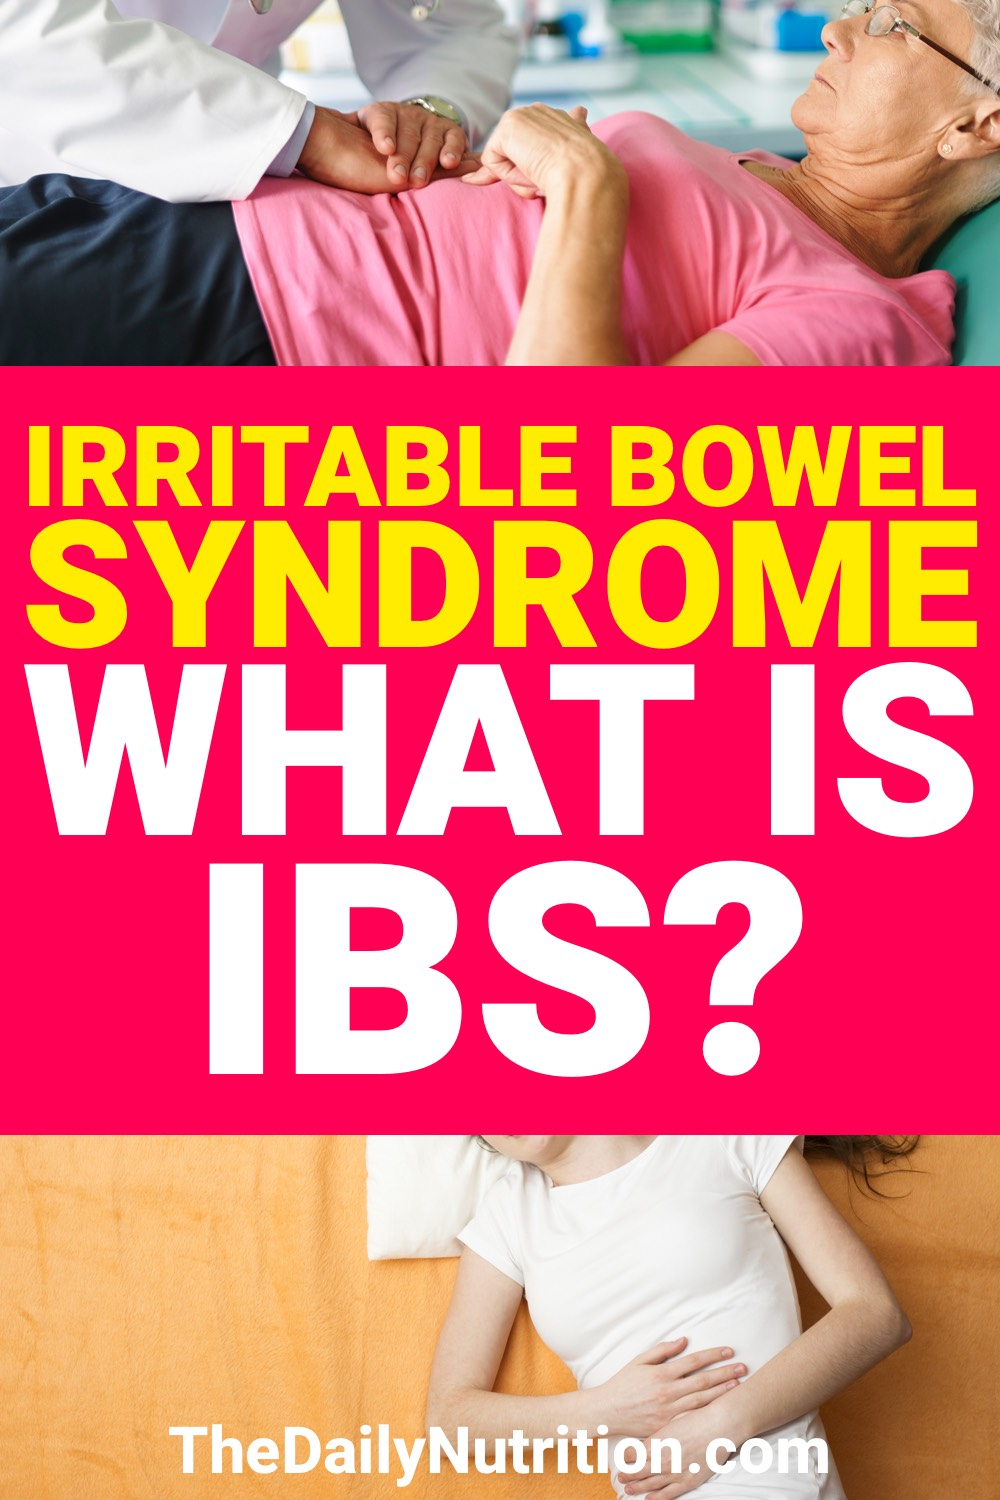 Irritable bowel syndrome affects your gut health. However, what causes irritable bowel syndrome?